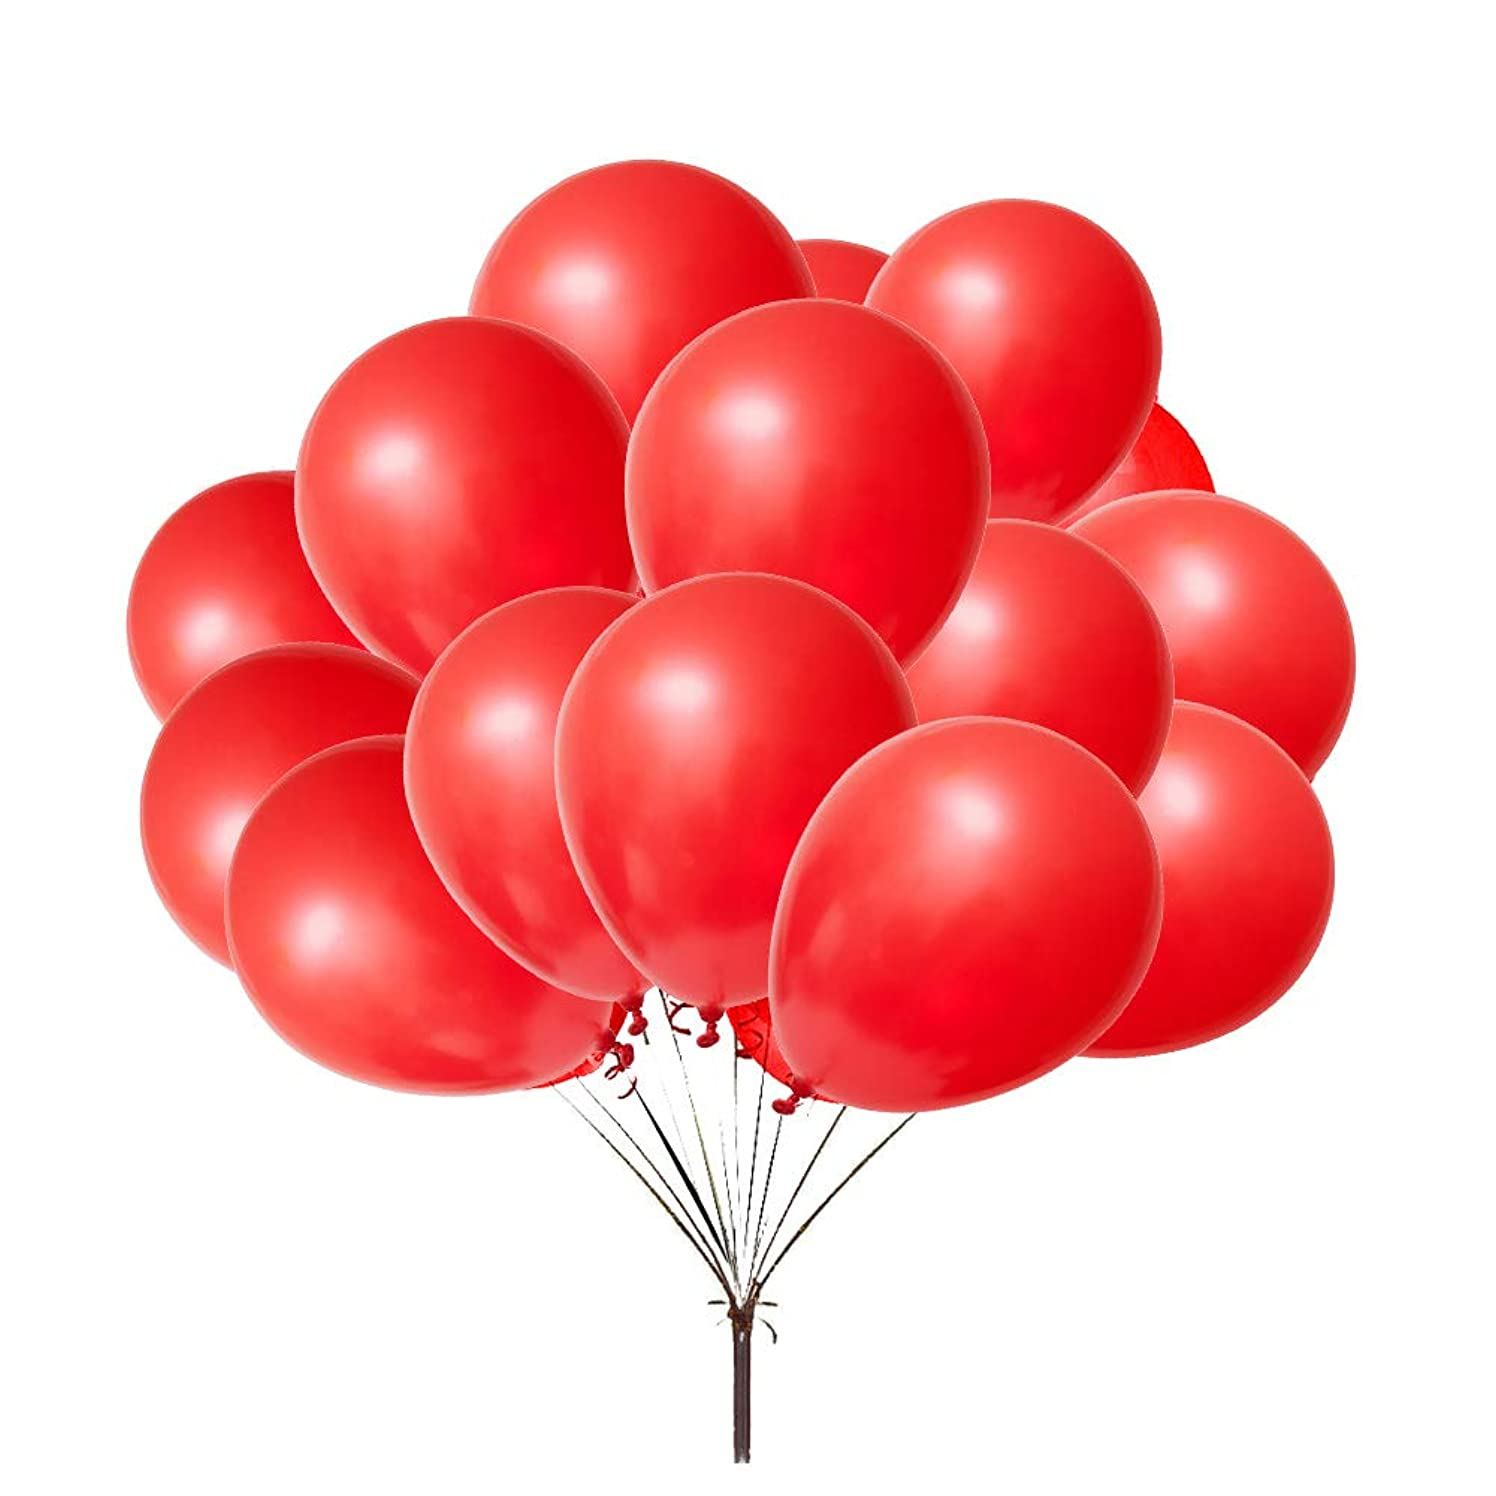 Thicken Red balloon 12'' Pearlized Latex Balloons Party Decoration Accessories & Party balloons(Pack of 100)